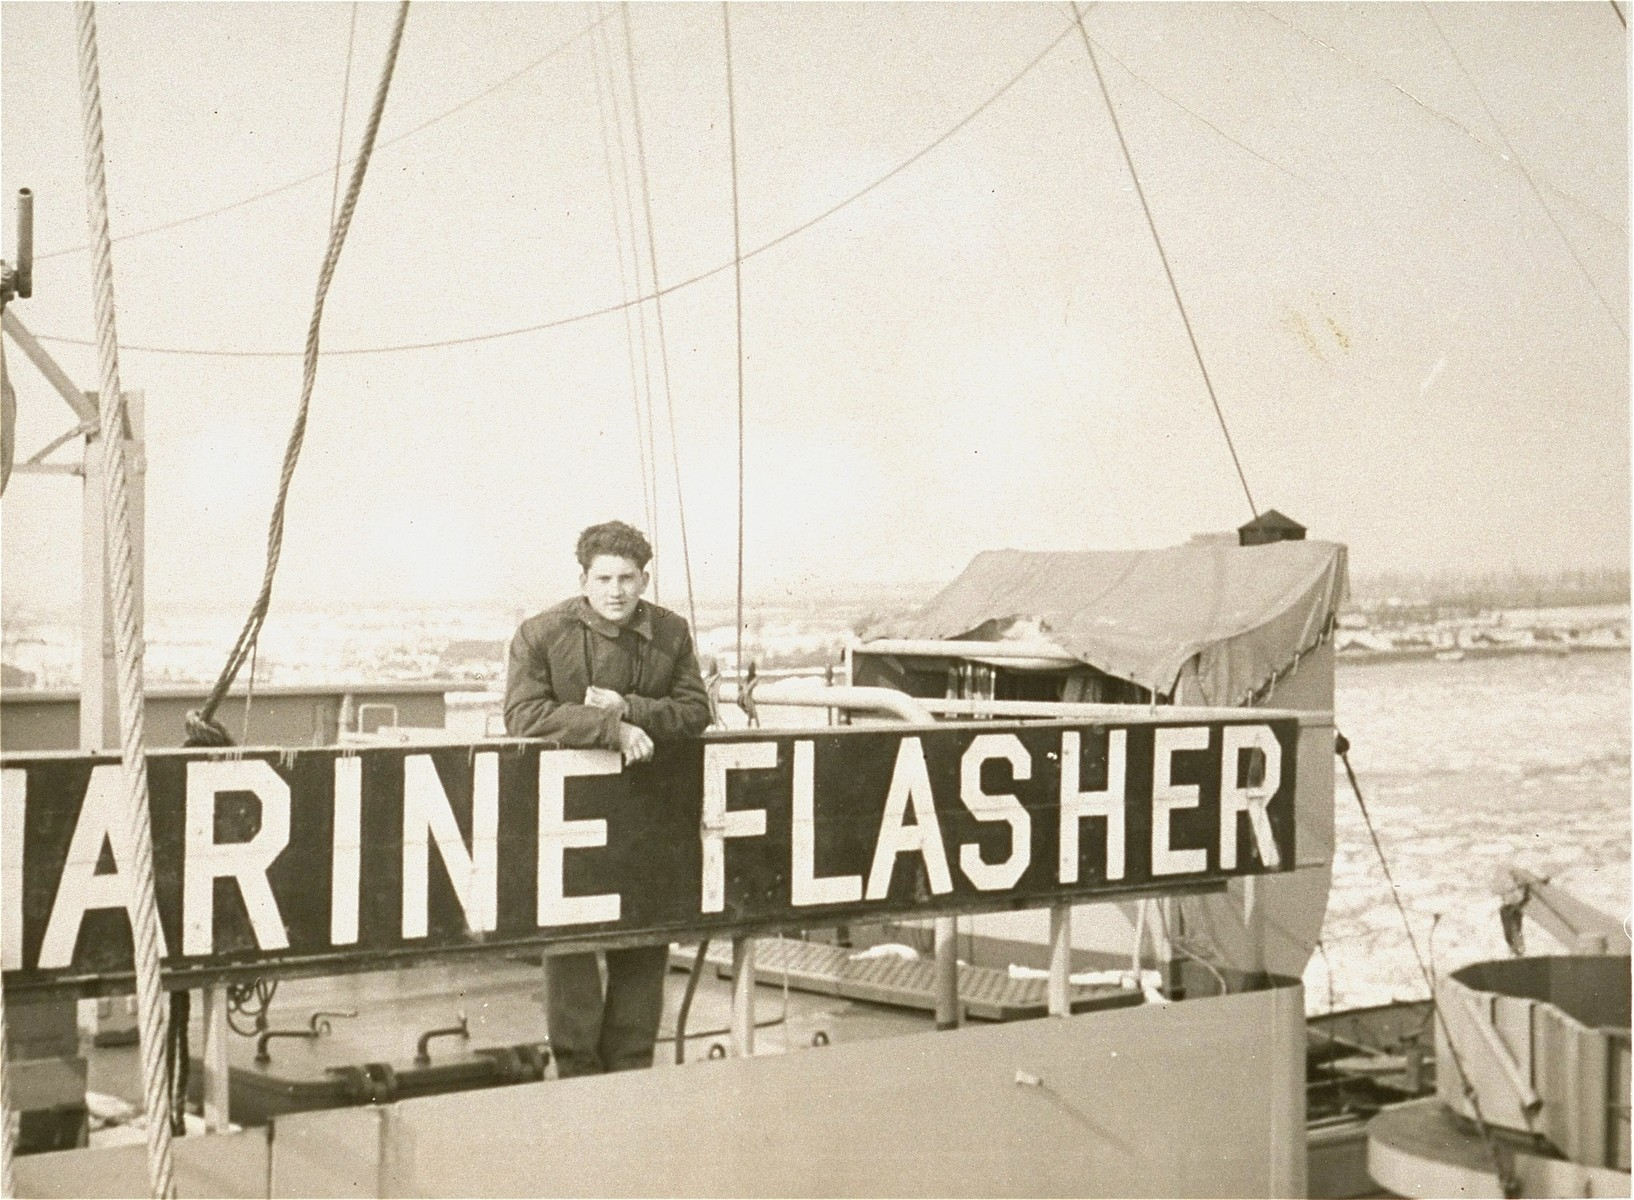 Manius Notowicz poses on the deck of the Marine Flasher just before its departure from the port of Bremerhaven.